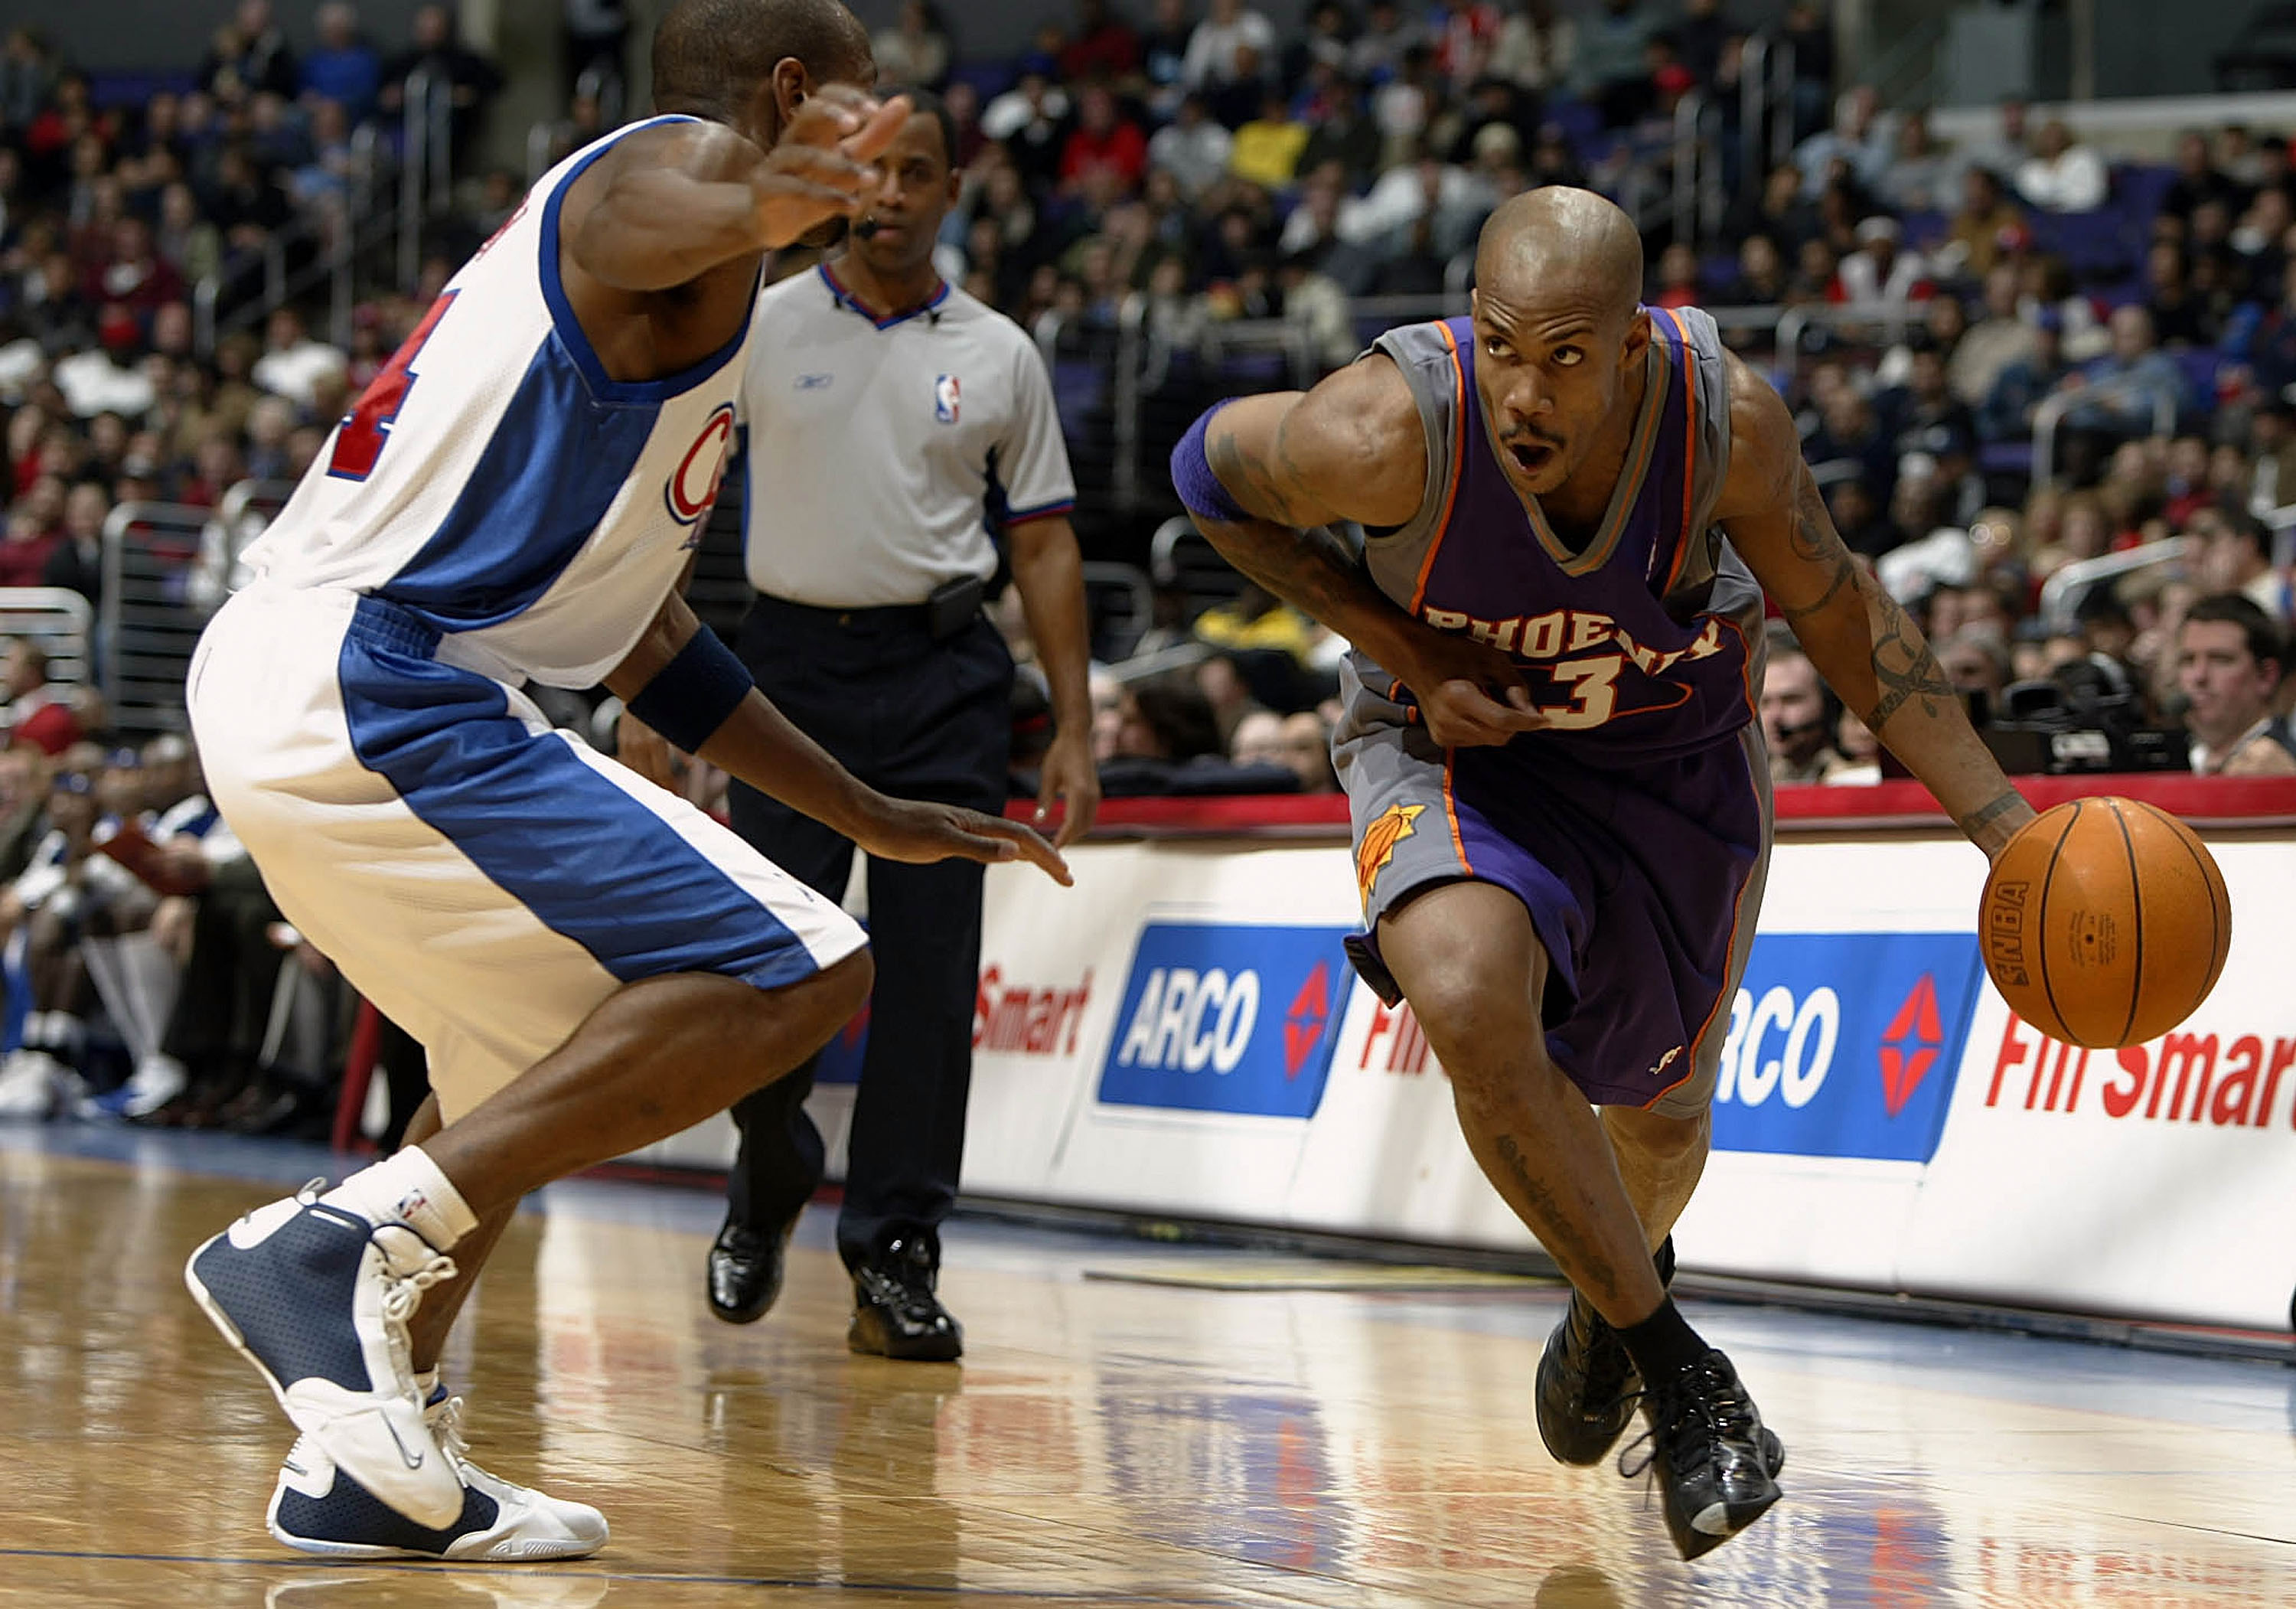 LOS ANGELES - DECEMBER 29: Stephon Marbury #3 of the Phoenix Suns drives past Doug Overton #24 of the Los Angeles Clippers during their game on December 29, 2003 at Staples Center in Los Angeles, California. The Suns won 113-105. NOTE TO USER: User expressly acknowledges and agrees that, by downloading and/or using this Photograph, User is consenting to the terms and conditions of the Getty Images License Agreement.